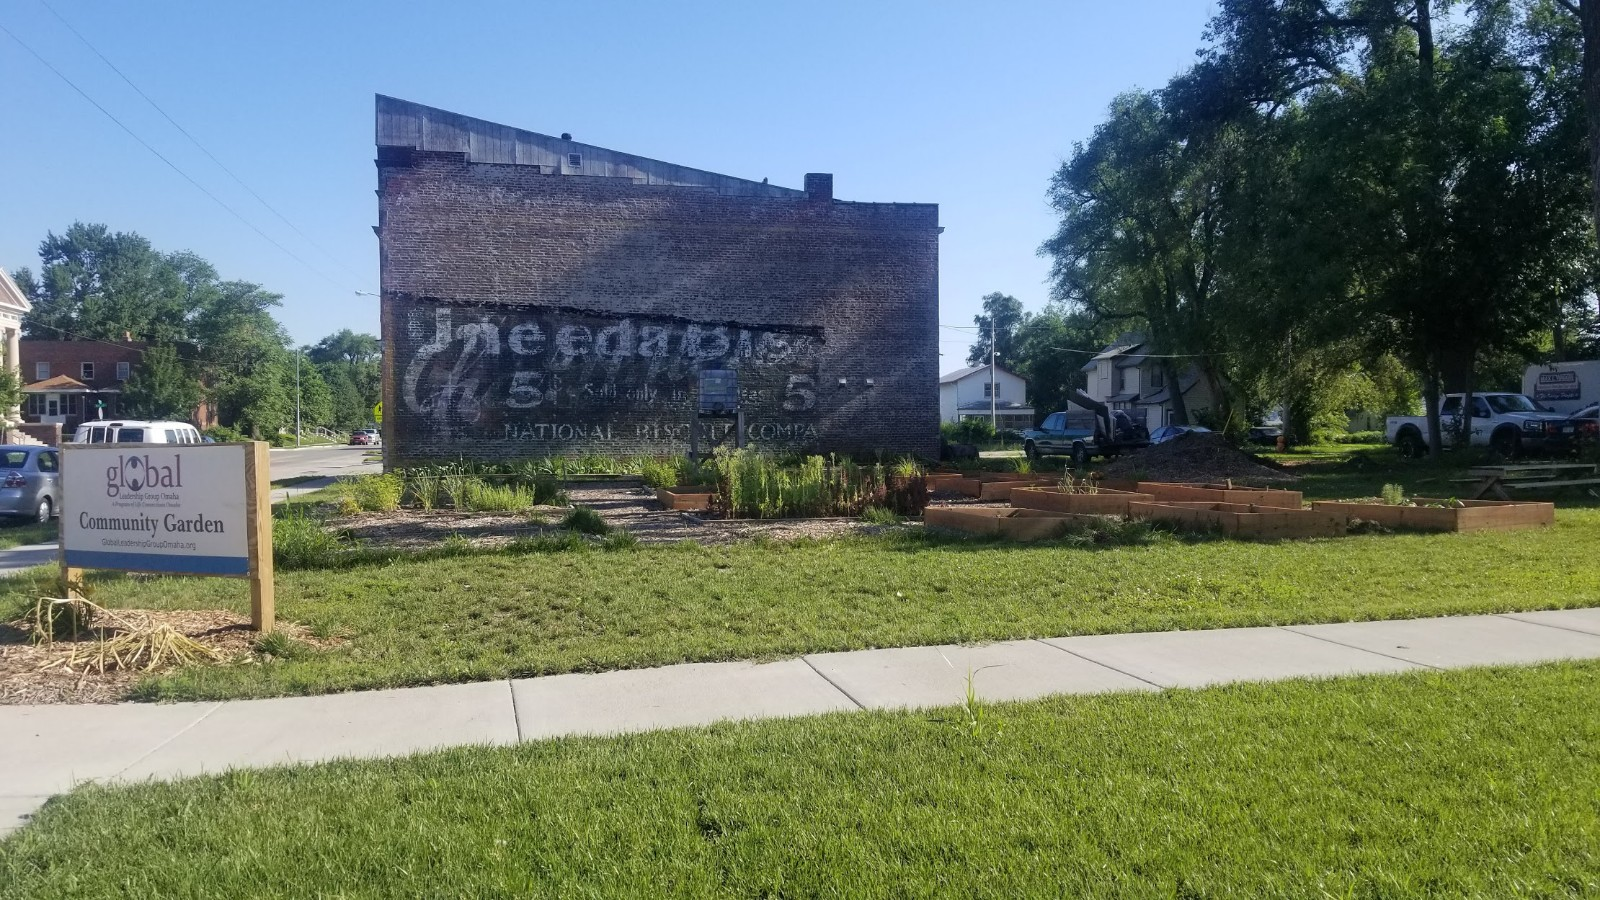 Goodwin Barbershop and Global Leadership Group Community Garden